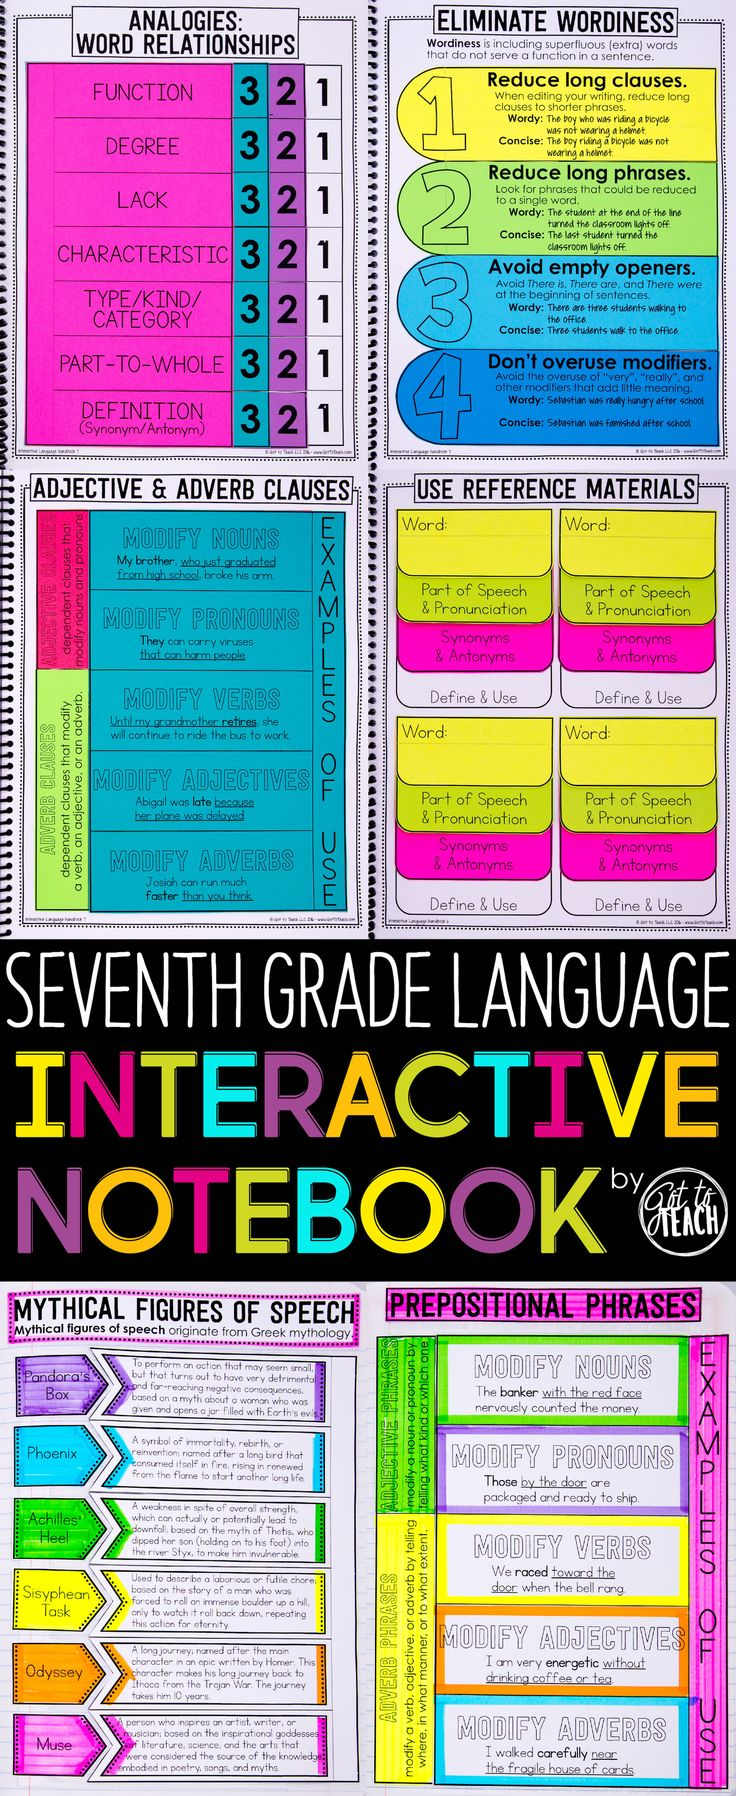 Seventh Grade Language Interactive Notebook. Cover all Common Core Language standards for 7th Grade in an engaging and memorable way. $